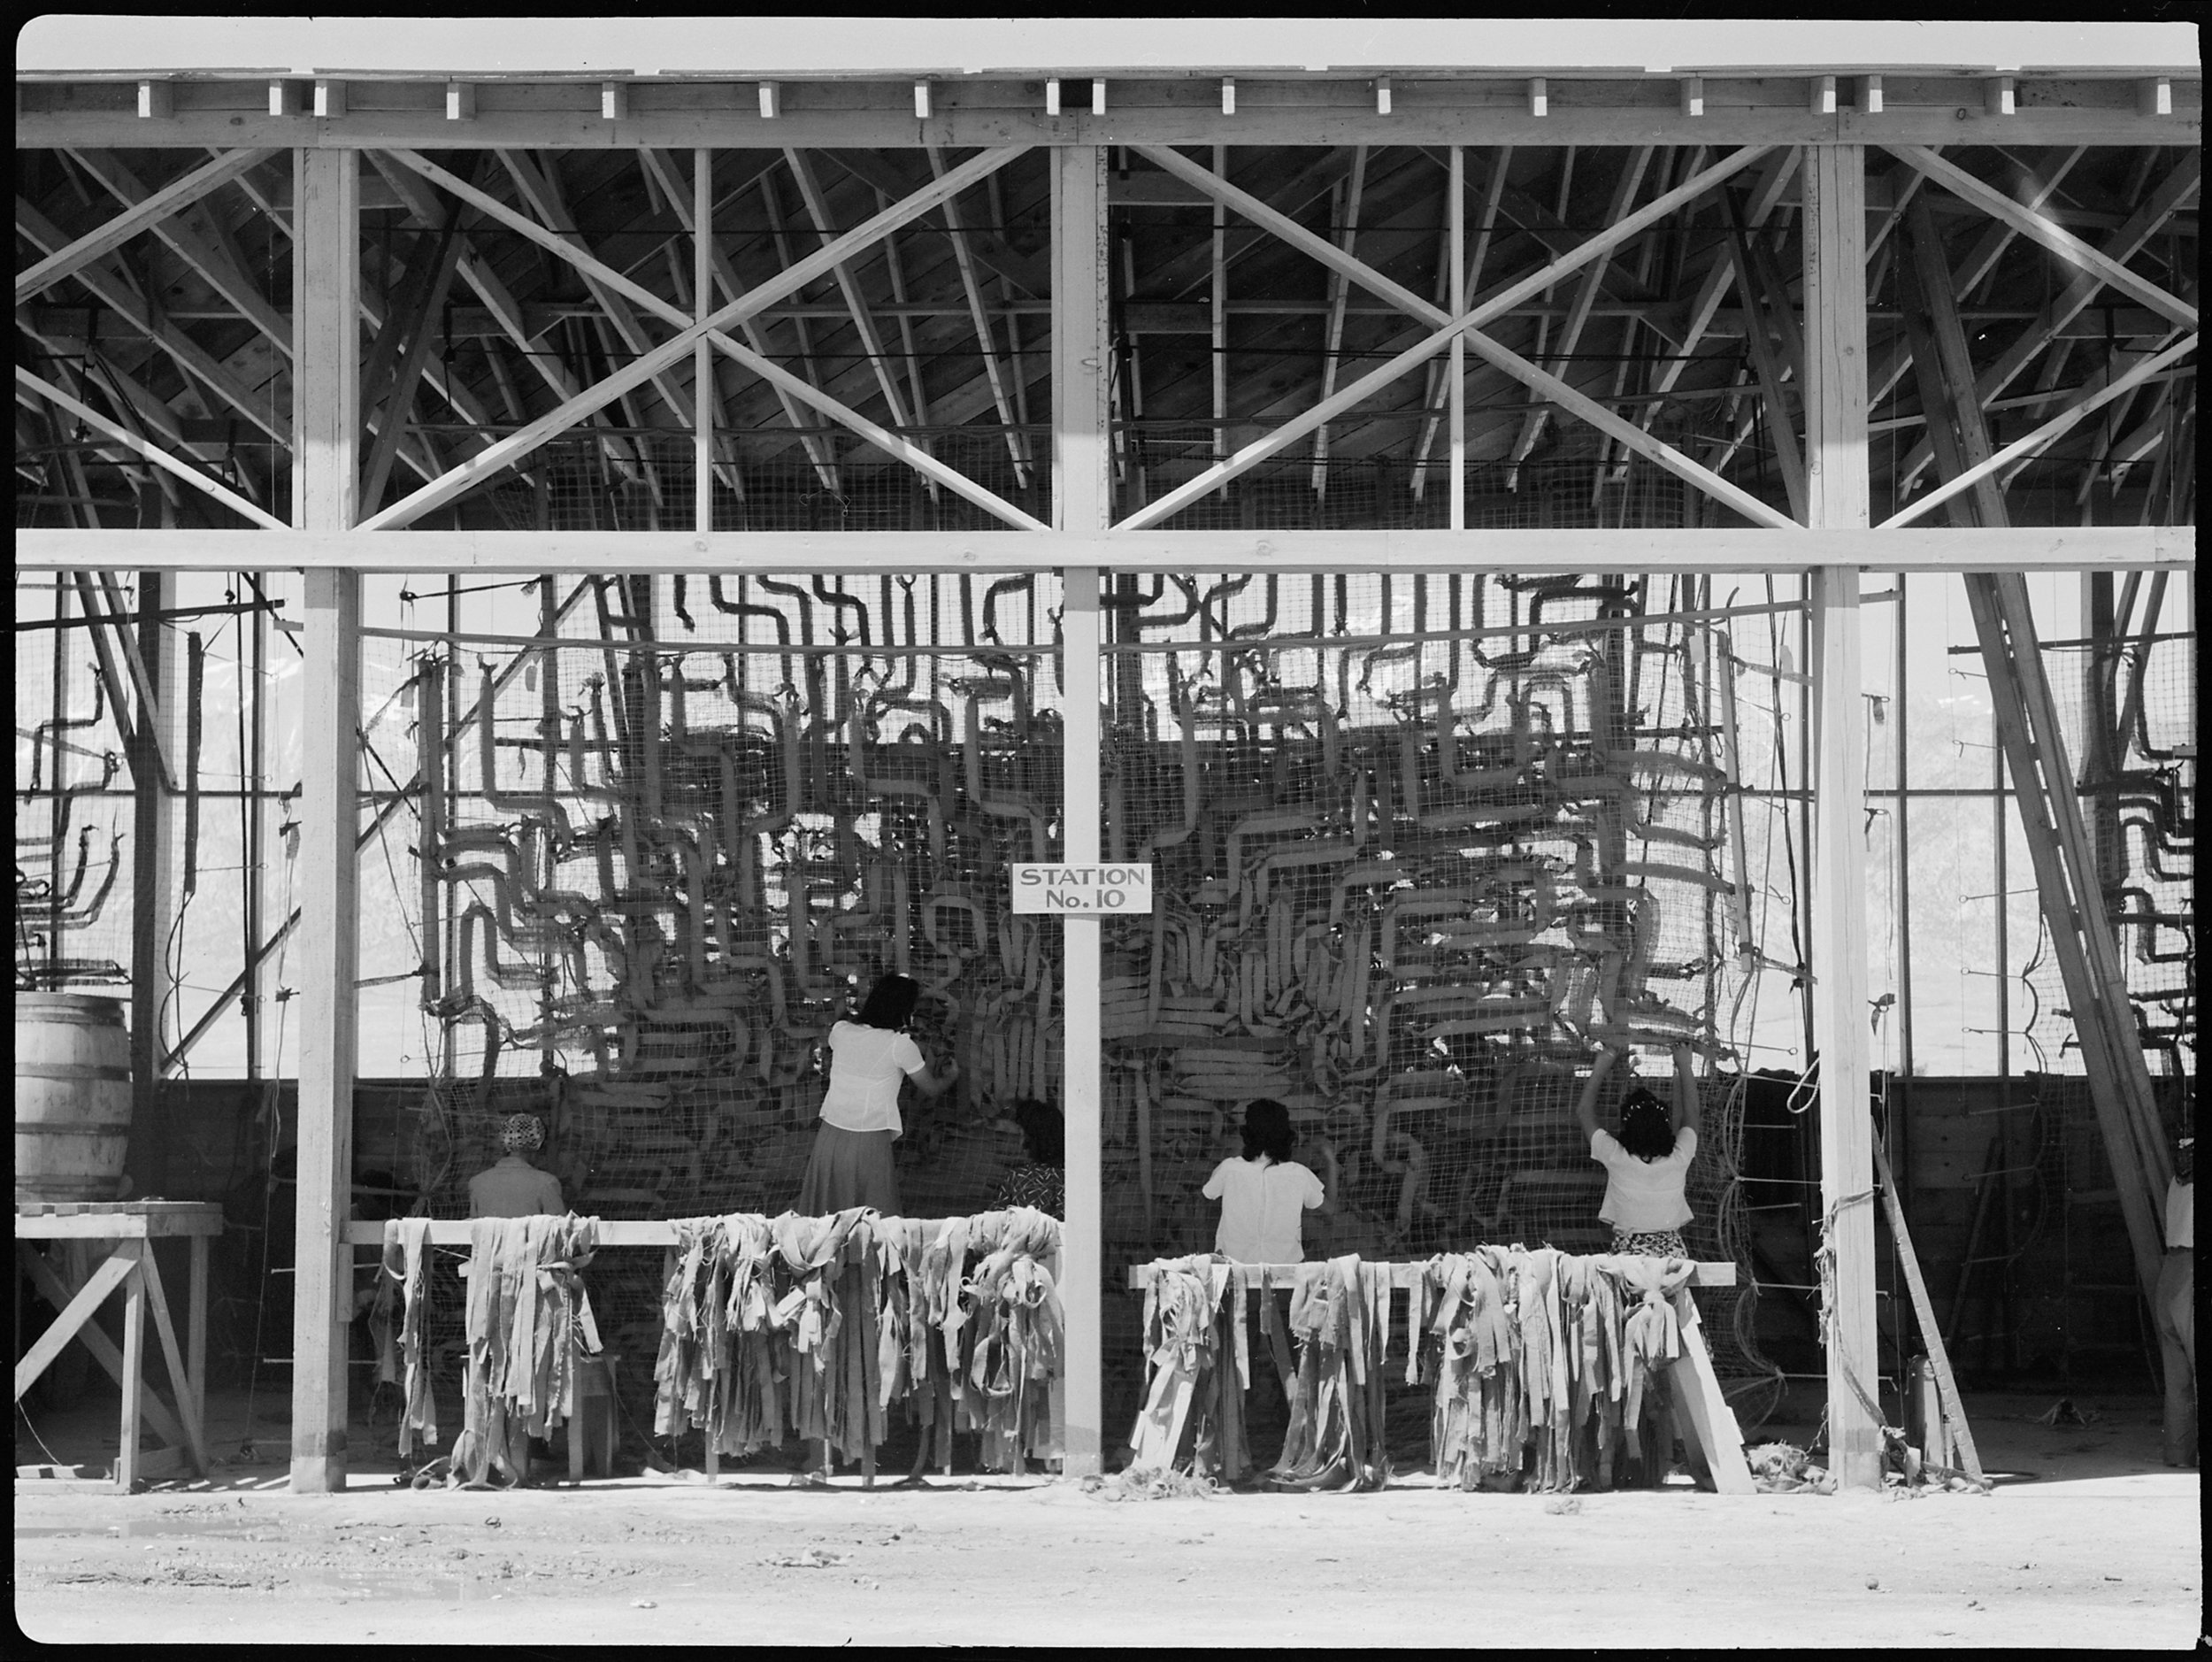 PRINT AVAILABLE   July 1, 1942 — Manzanar Relocation Center, Manzanar, California. Making camouflage nets for the War Department. This is one of several War and Navy Department projects carried on by persons of Japanese ancestry in relocation centers.